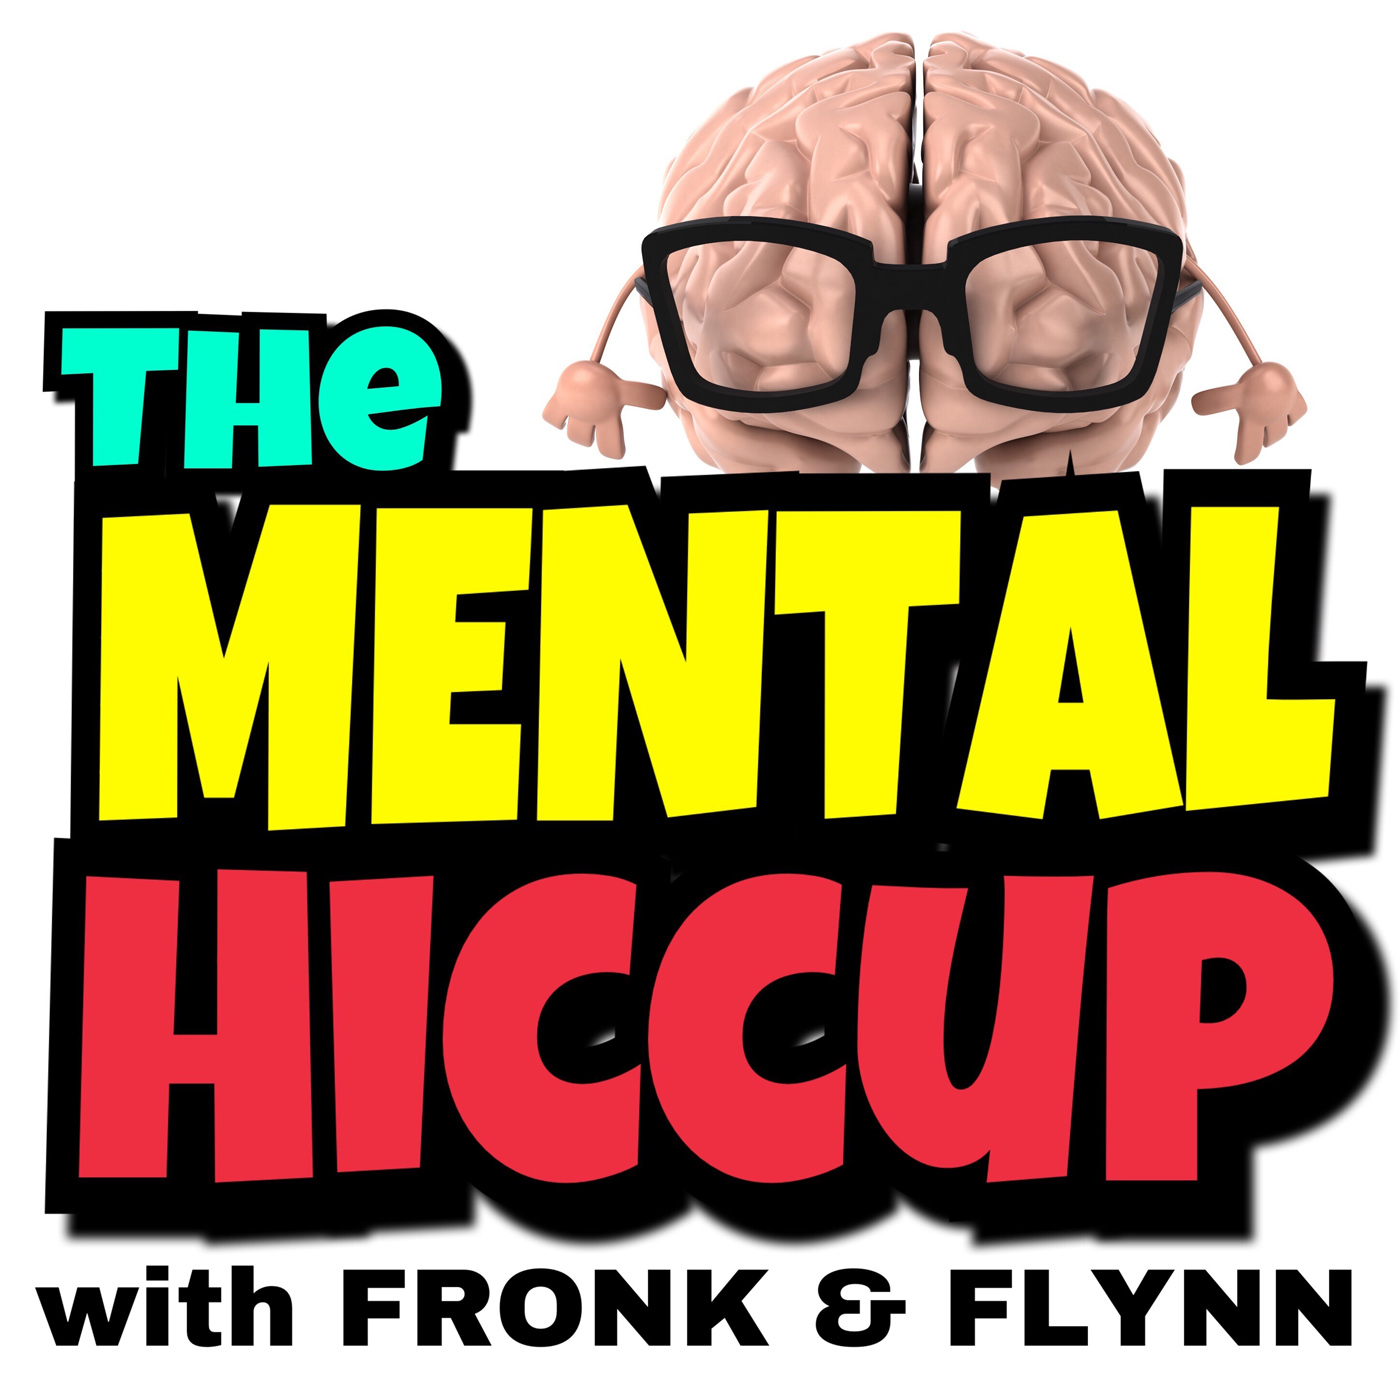 The MENTAL HICCUP